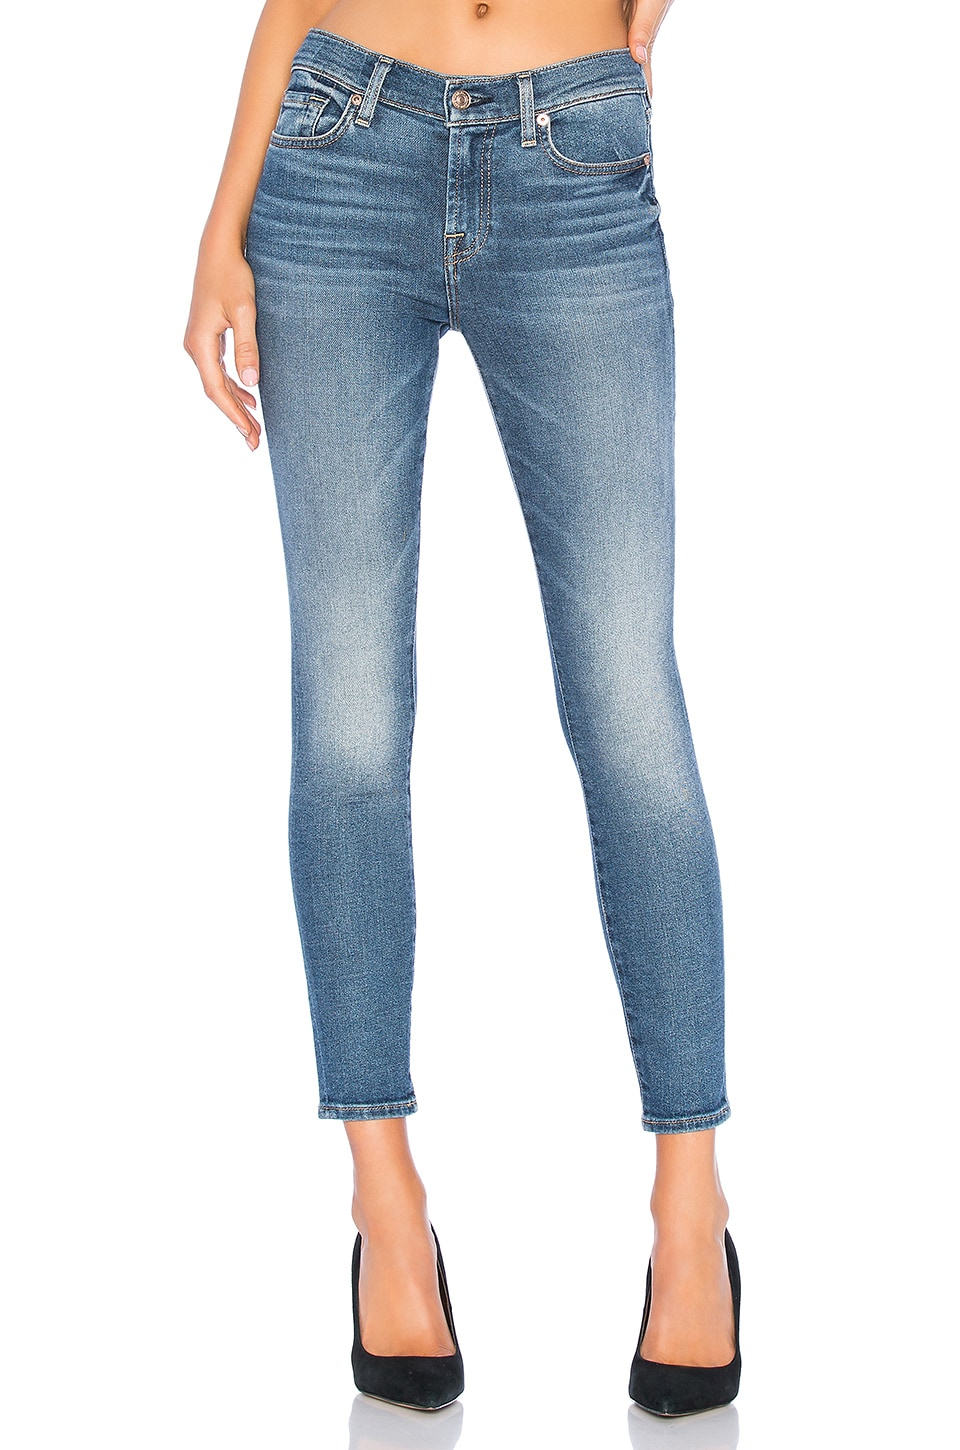 7 For All Mankind Ankle Skinny in Feme